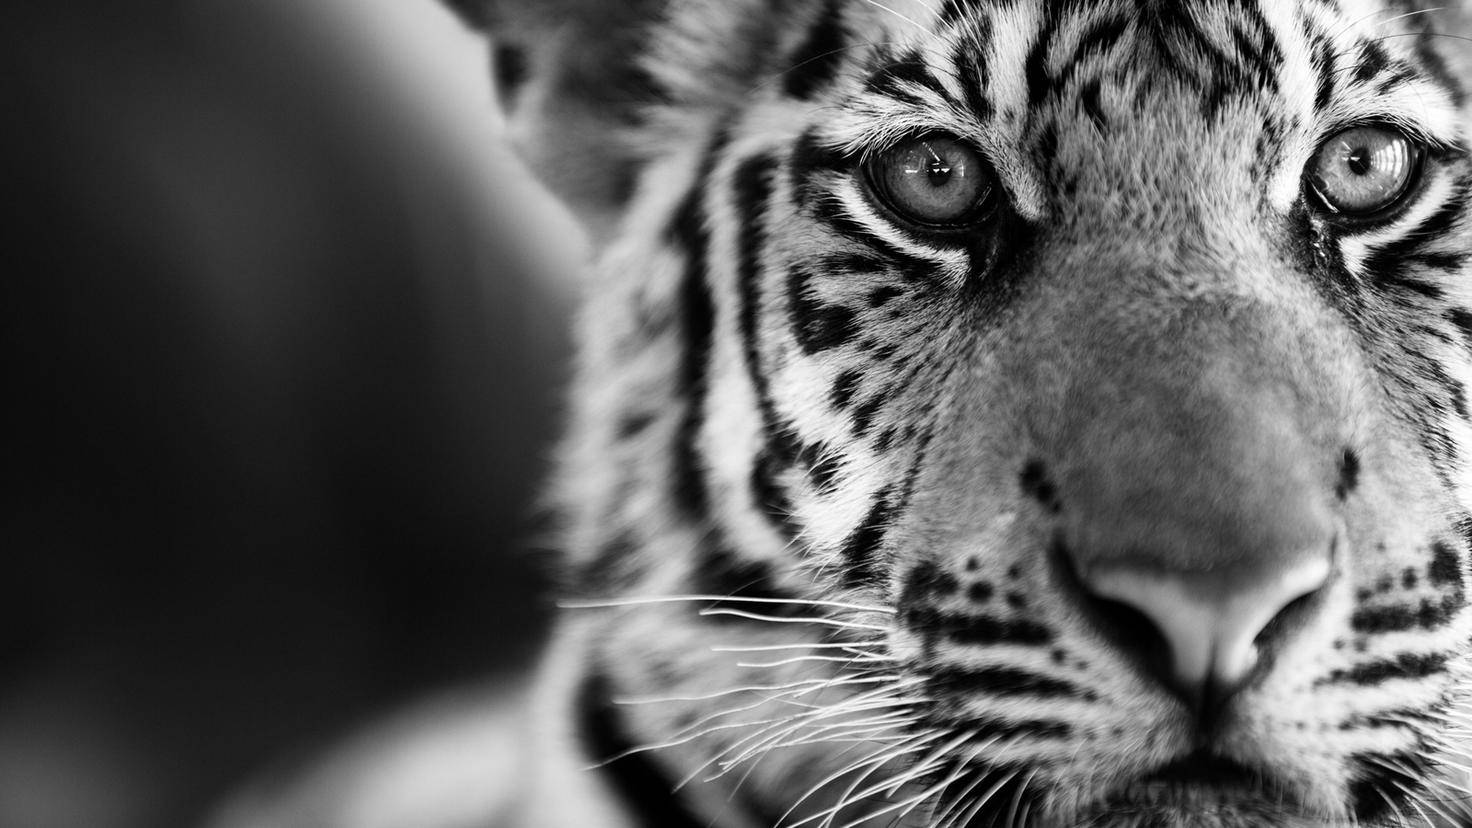 Black & White photo of a young tiger.